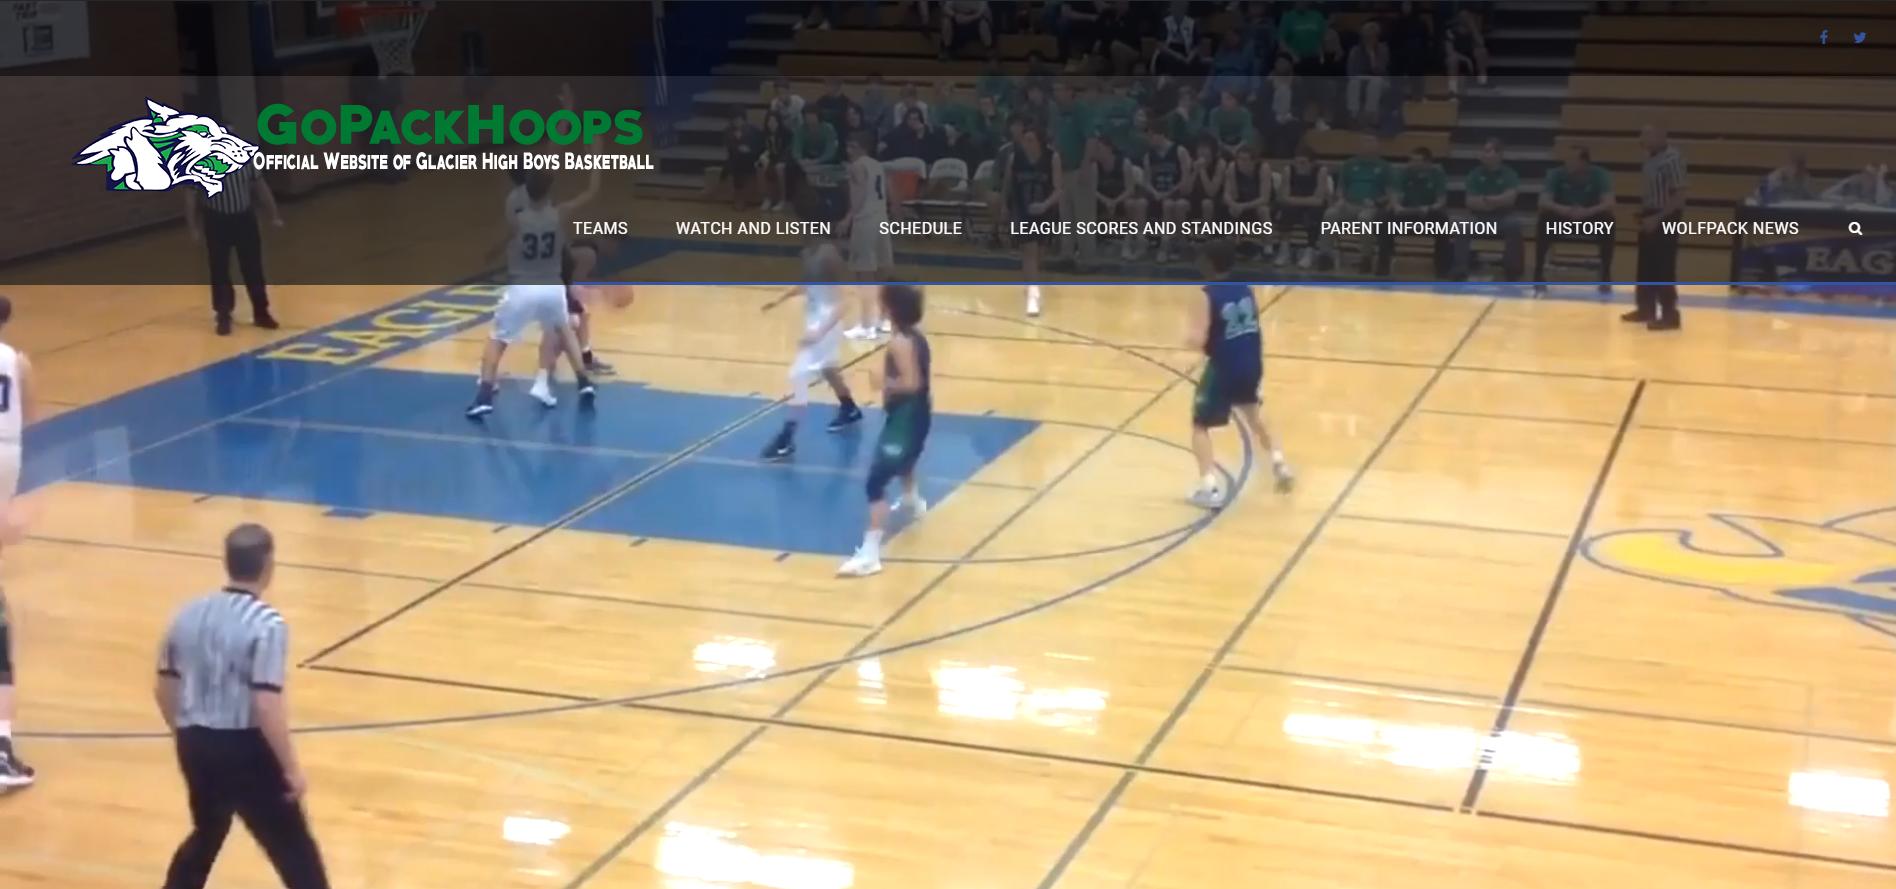 glacier high school boys basketball screenshot